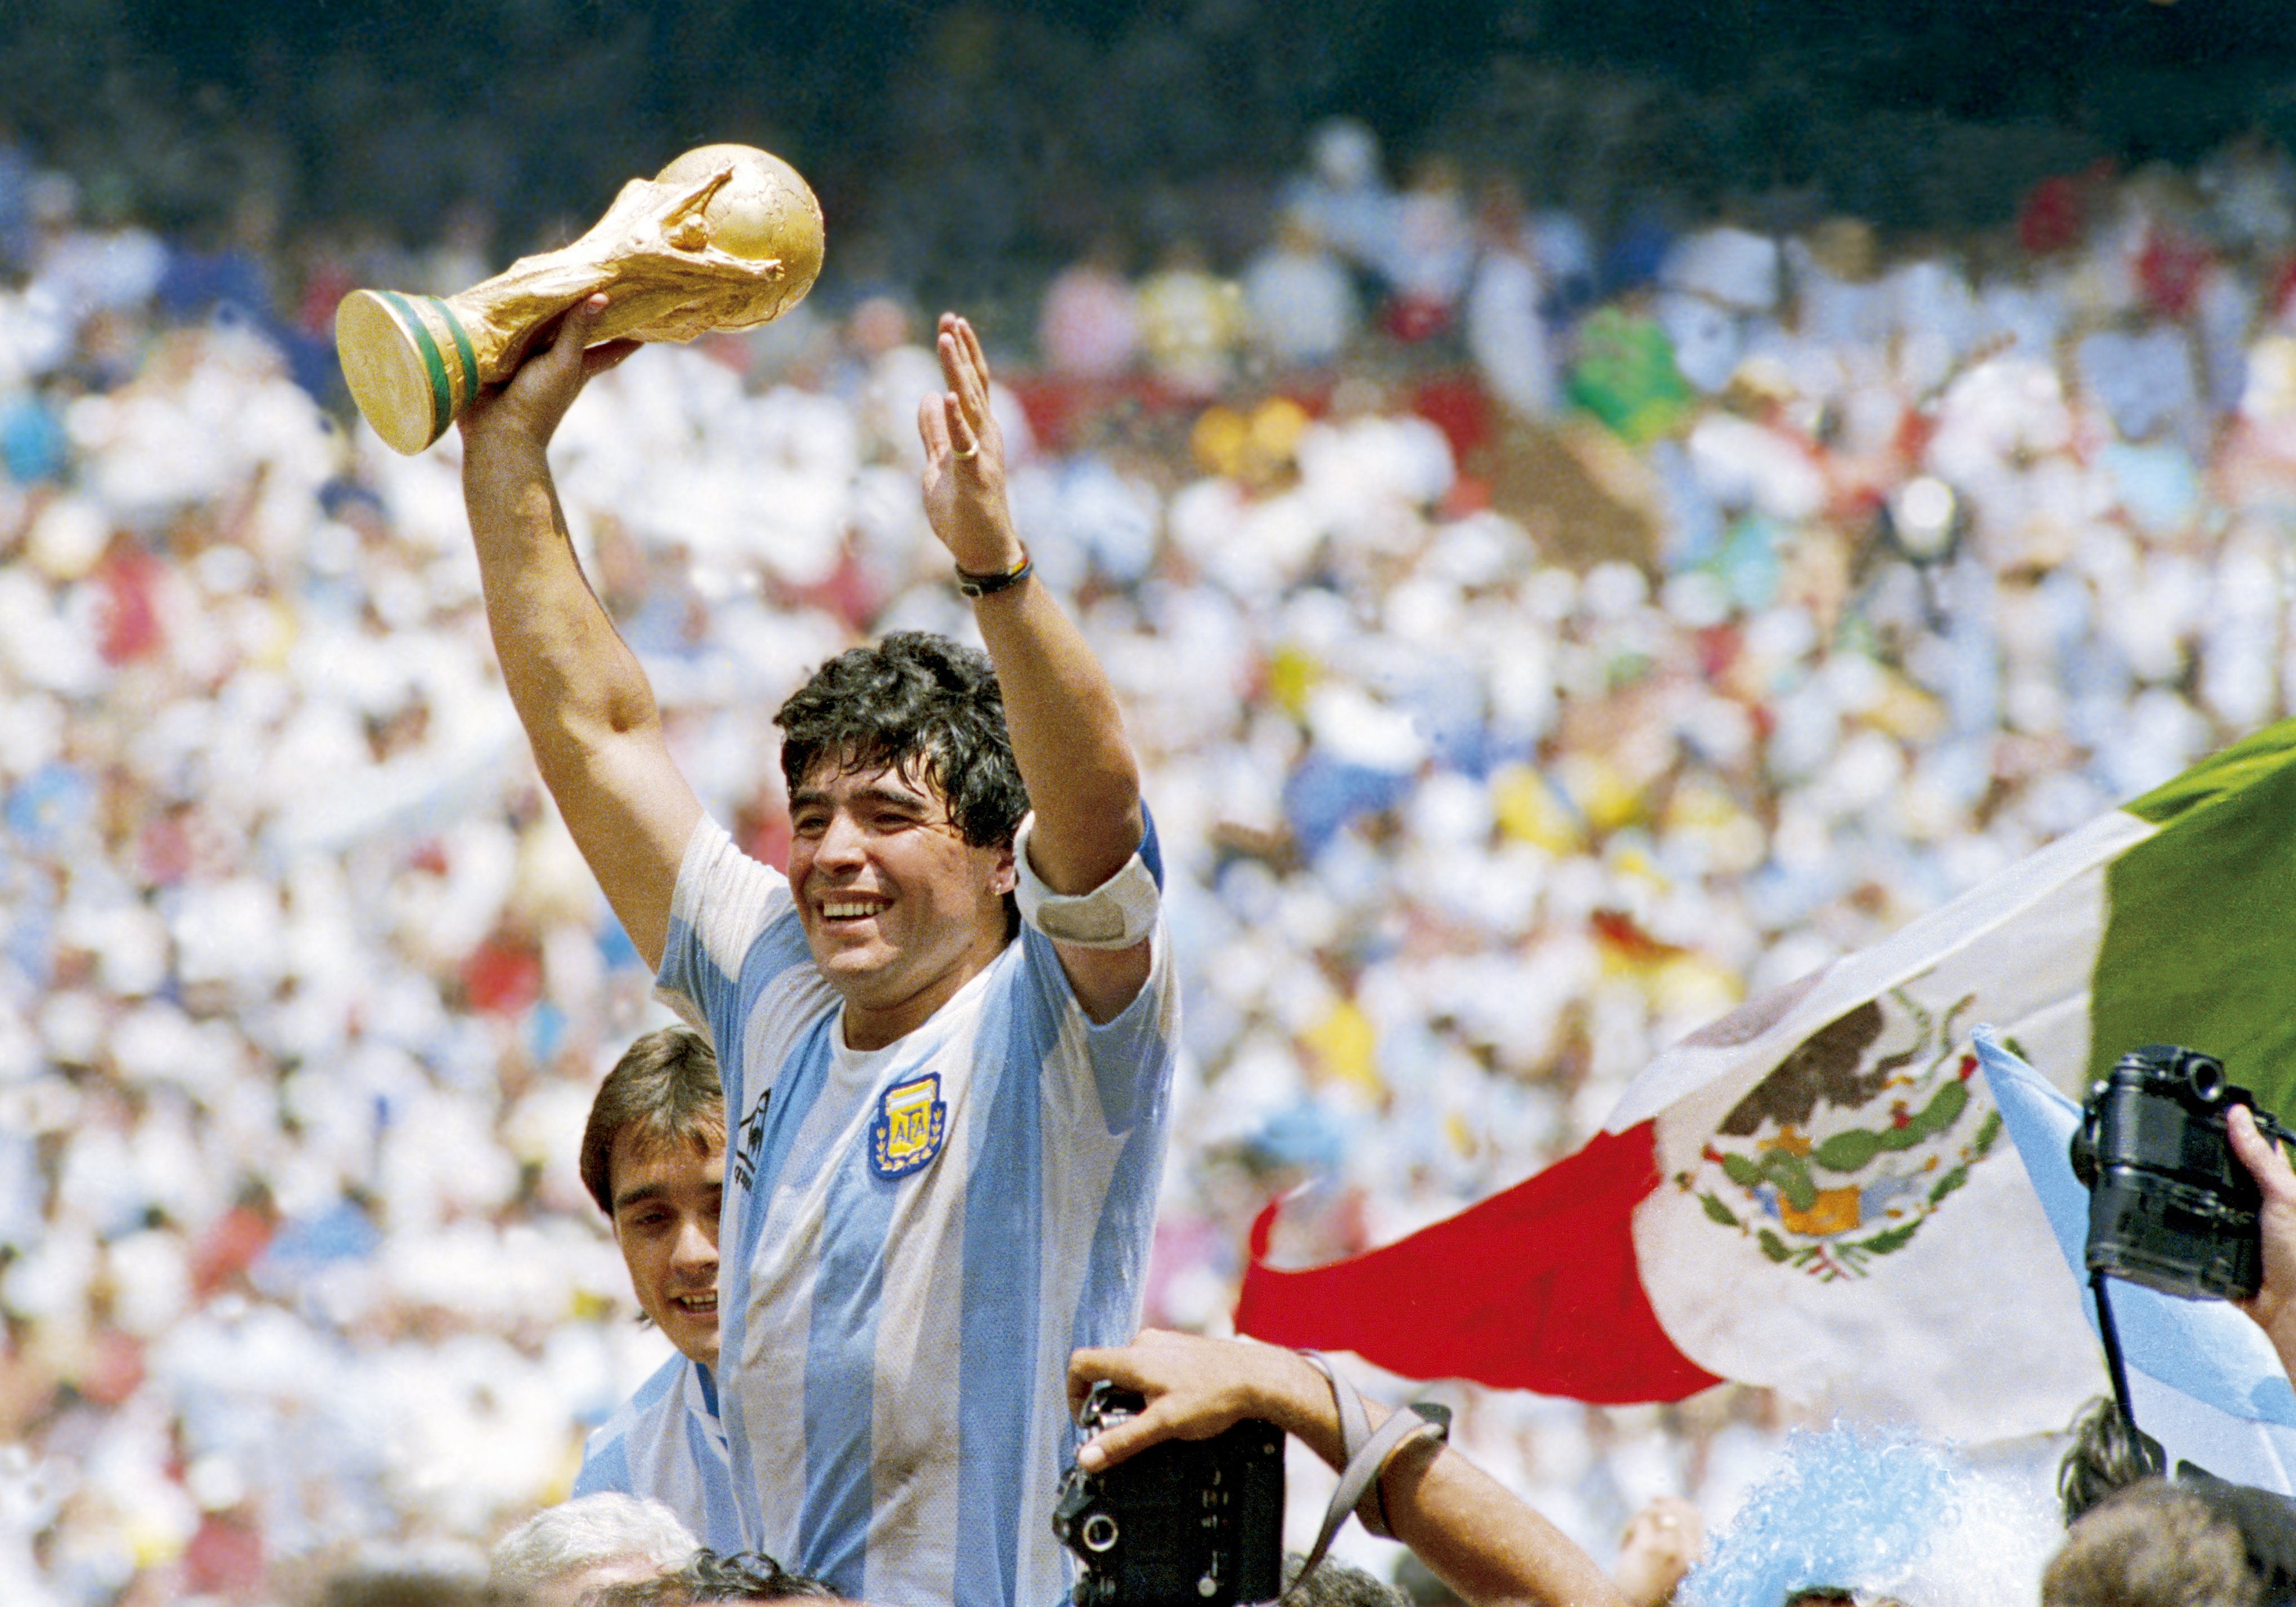 Diego Maradona holds the World Cup trophy after defeating West Germany 3-2 during the 1986 FIFA World Cup Final match on June 29, 1986 in Mexico City, Mexico.